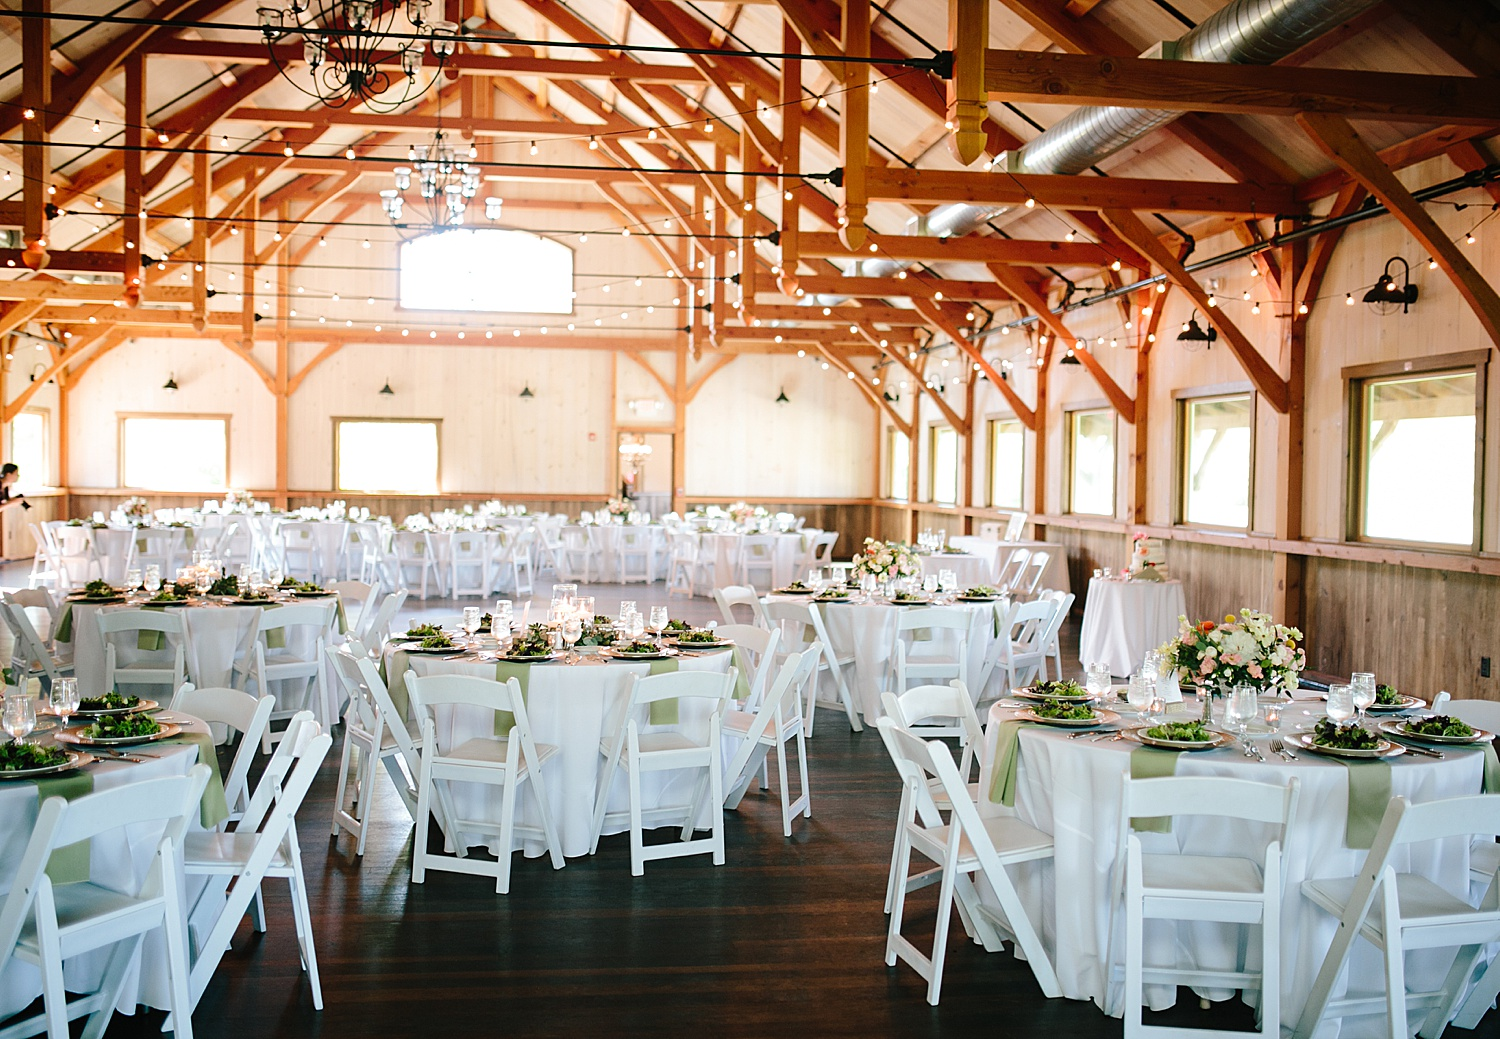 emilyaustin_rosebank_winery_newhope_farm_wedding_image099.jpg